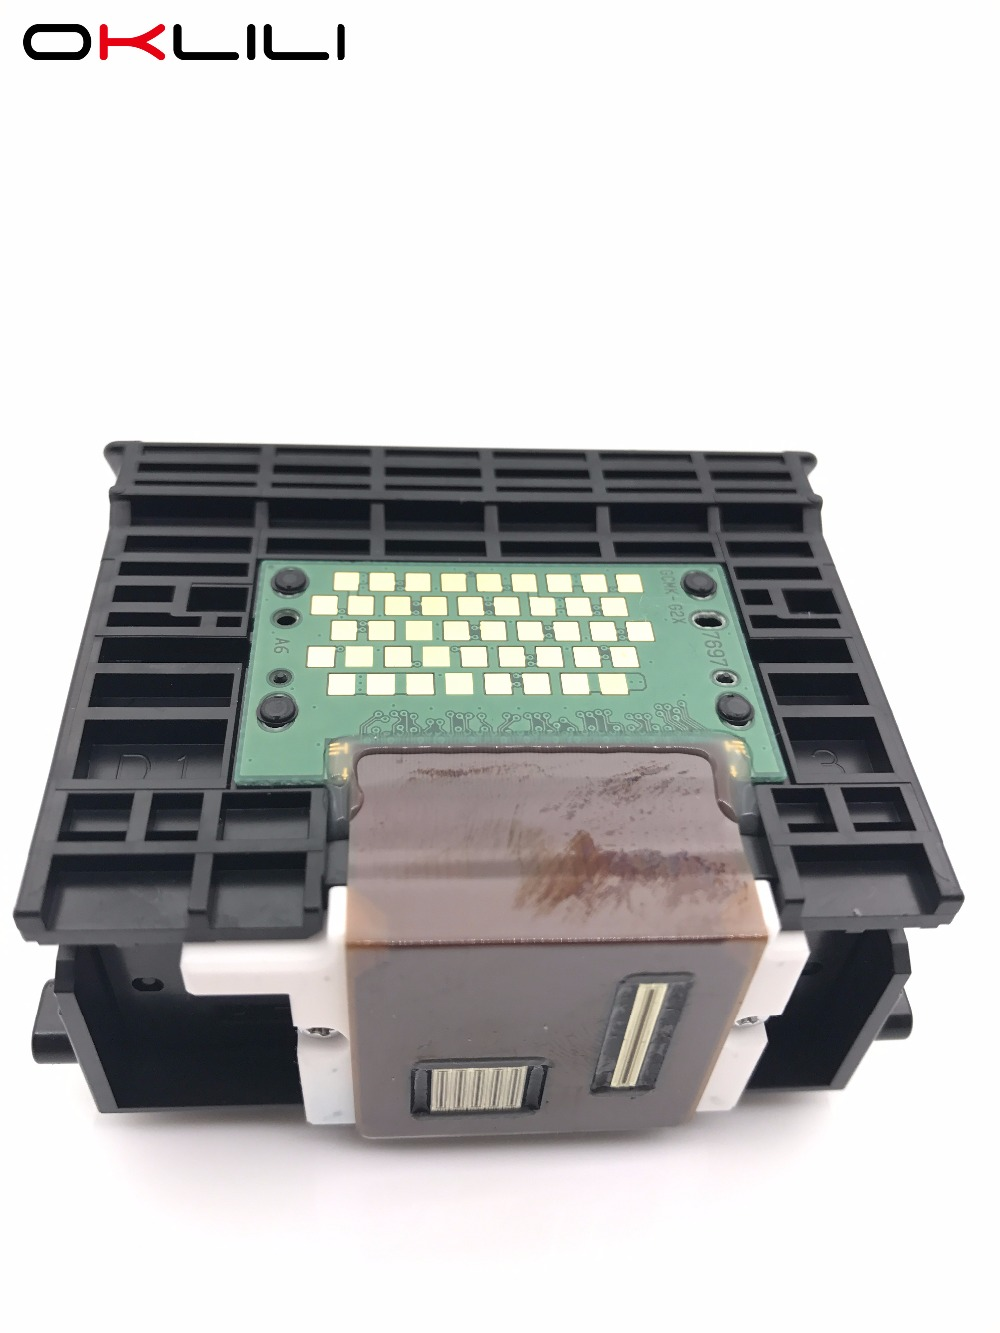 OKLILI ORIGINAL QY6-0070 QY6-0070-000 Printhead Print Head Printer Head for Canon MP510 MP520 MX700 iP3300 iP3500 цена